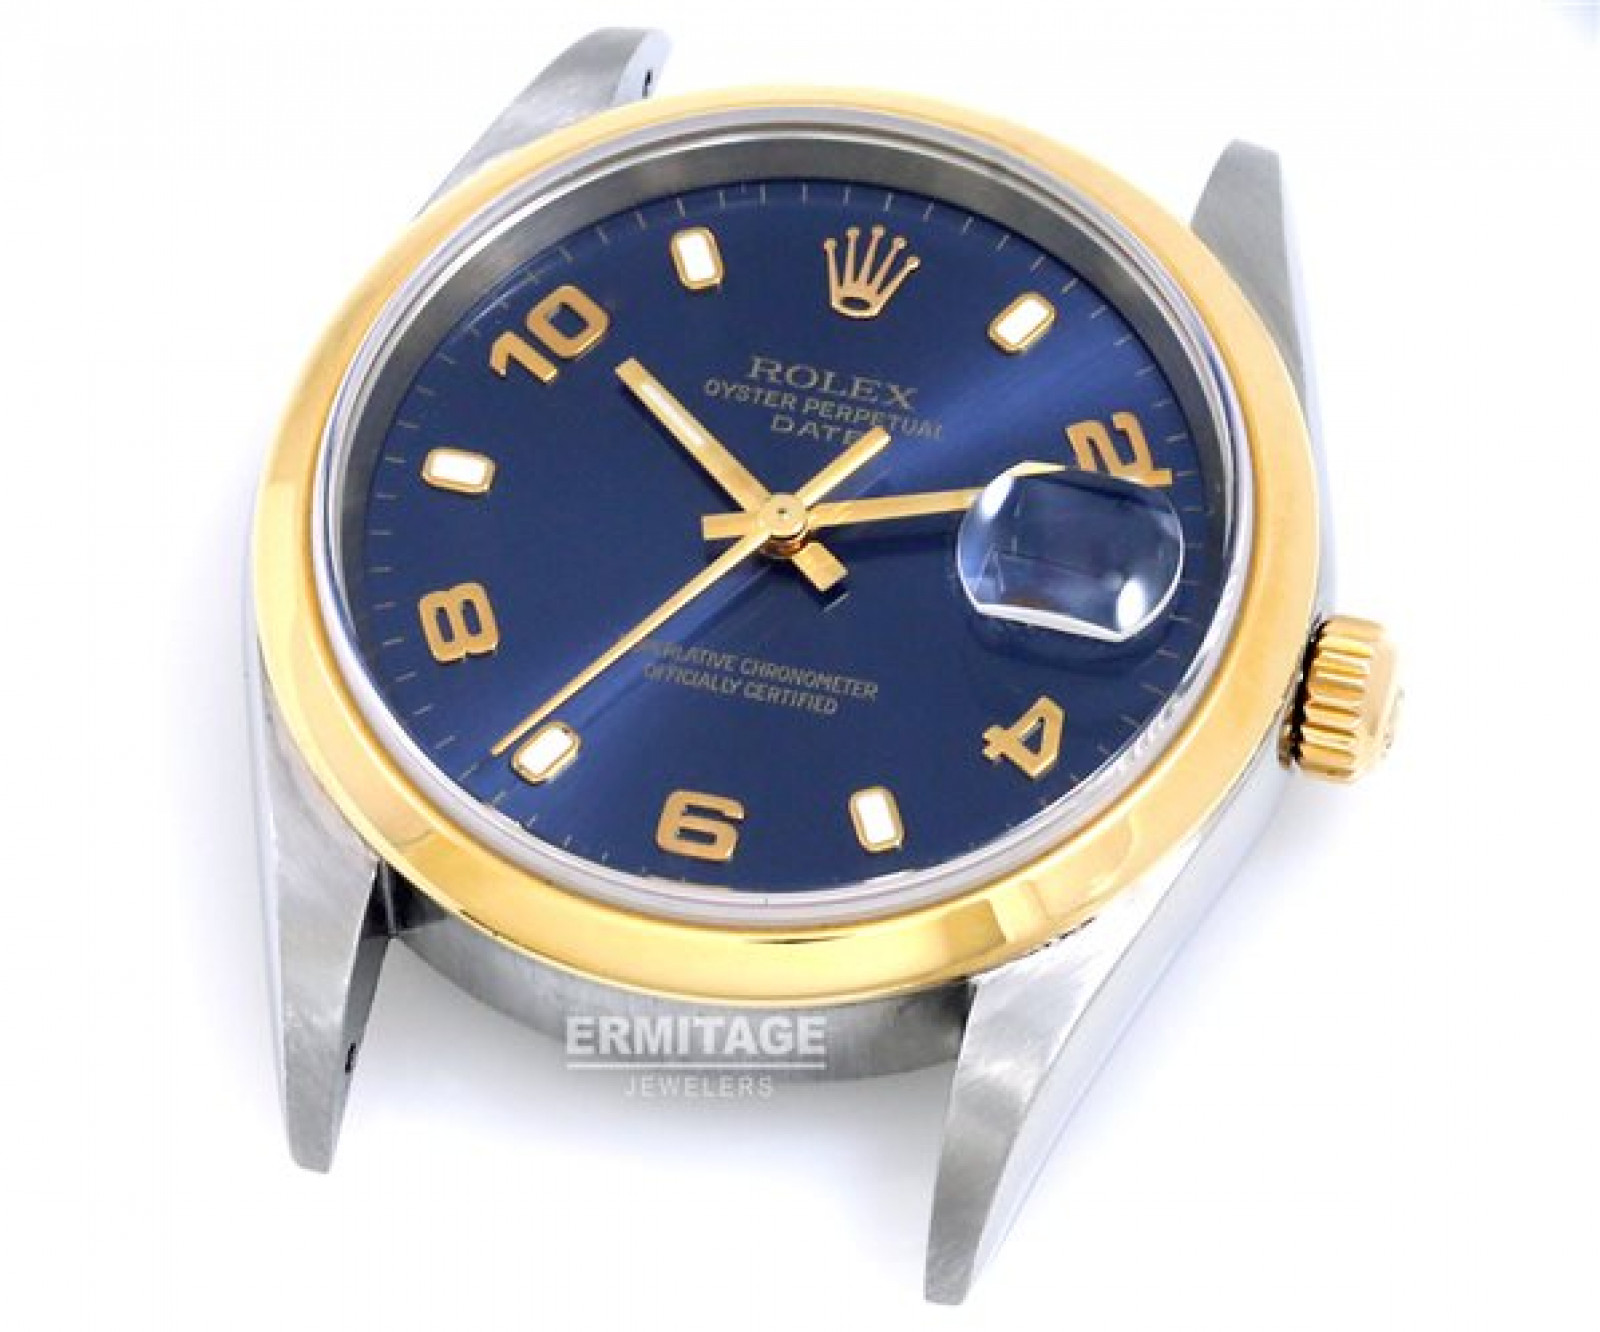 Rolex Date 15203 Gold & Steel Year 2004